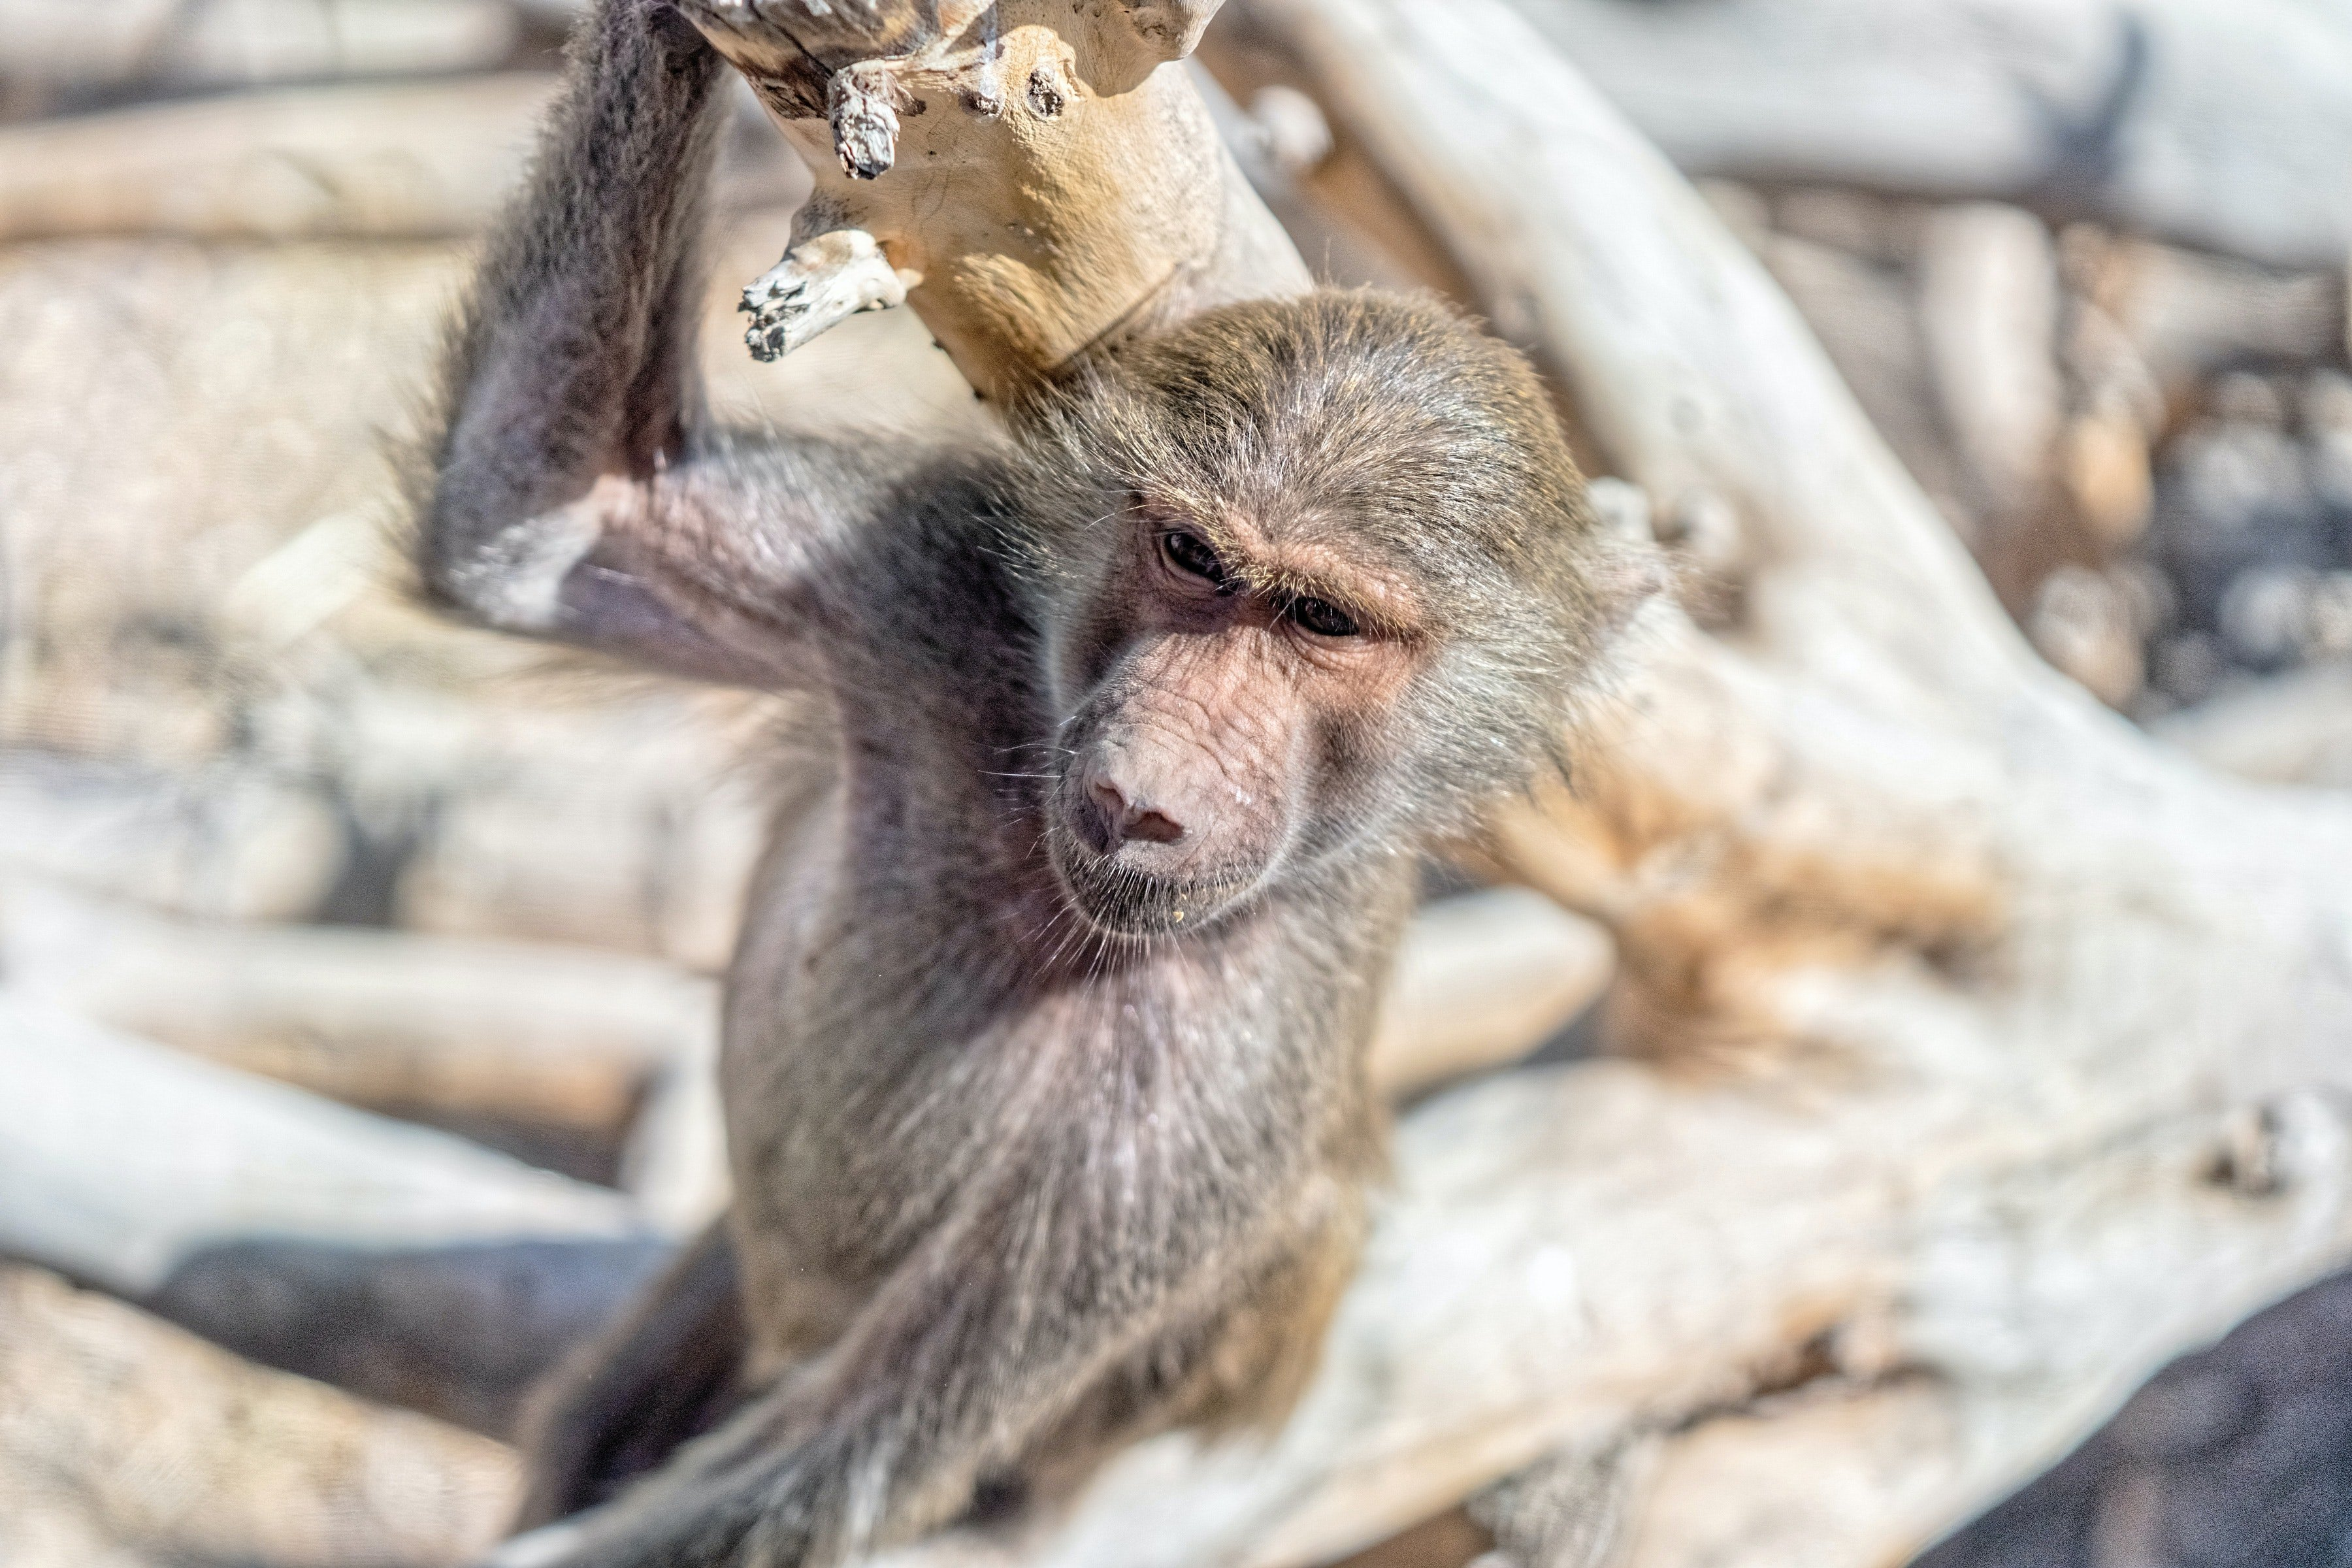 Pictured - A photo of a monkey hanging on a tree branch | Source: Pexels